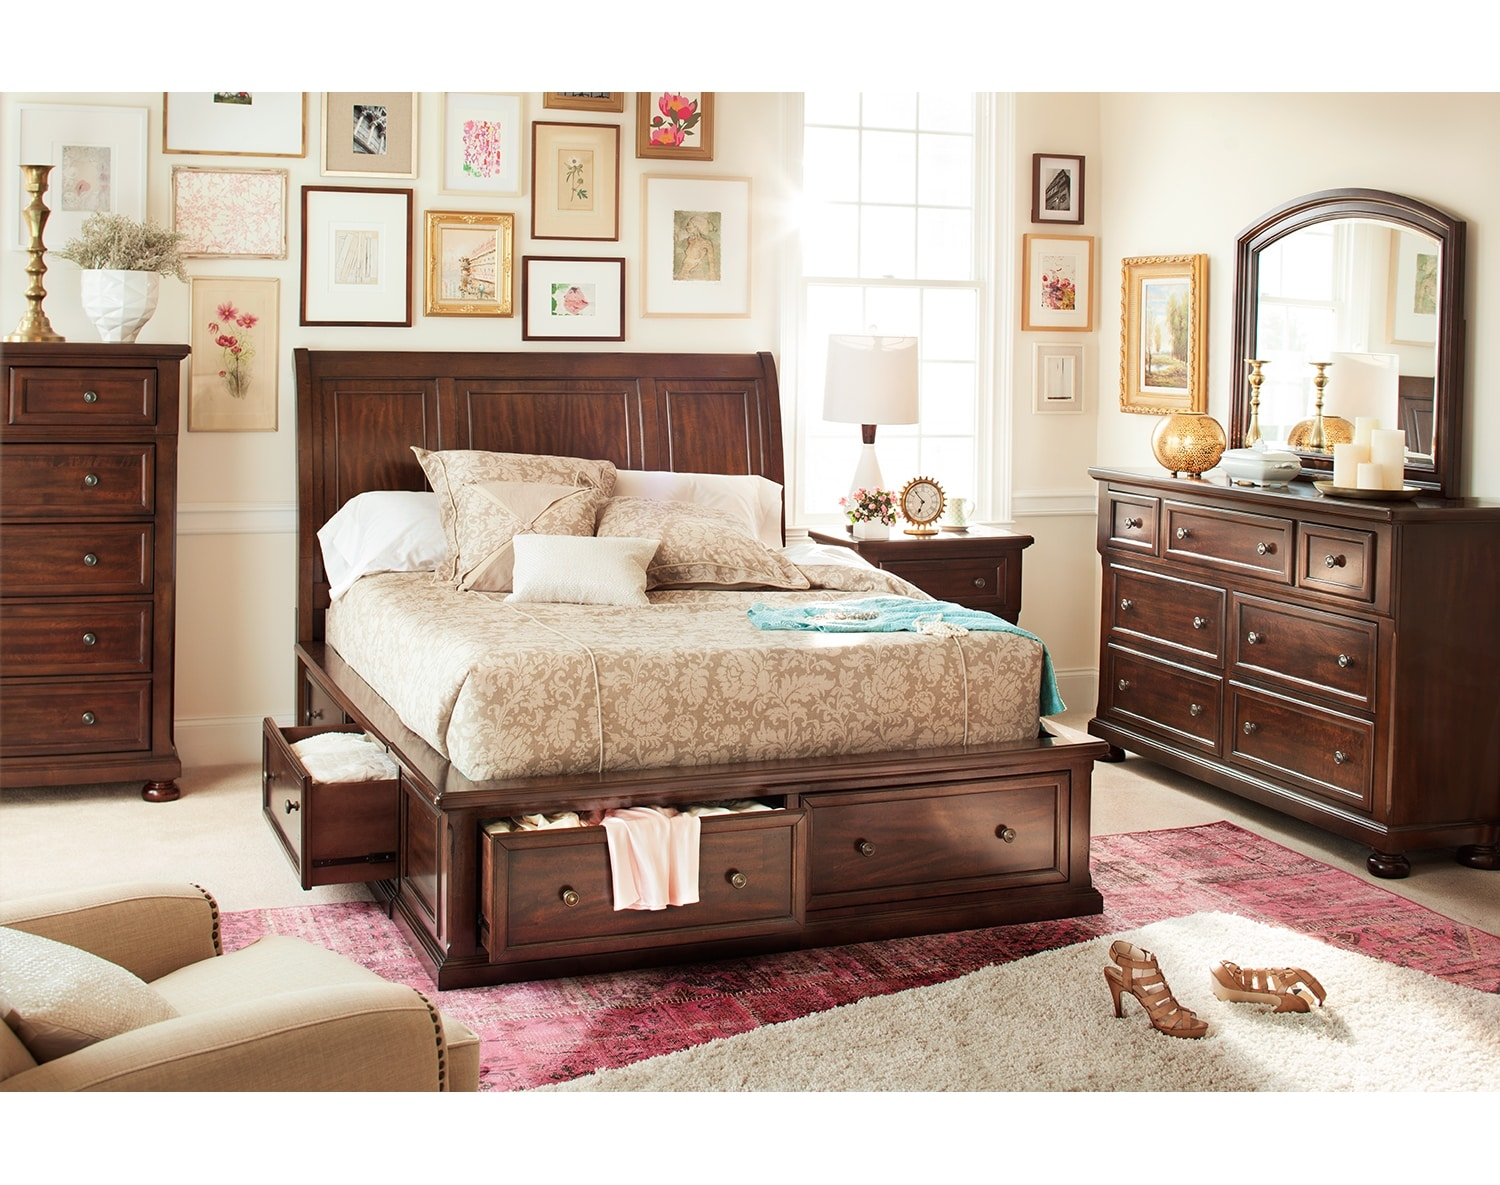 The Hanover Storage Bedroom Collection   Cherry. The Hanover Storage Bedroom Collection   Cherry   Value City Furniture